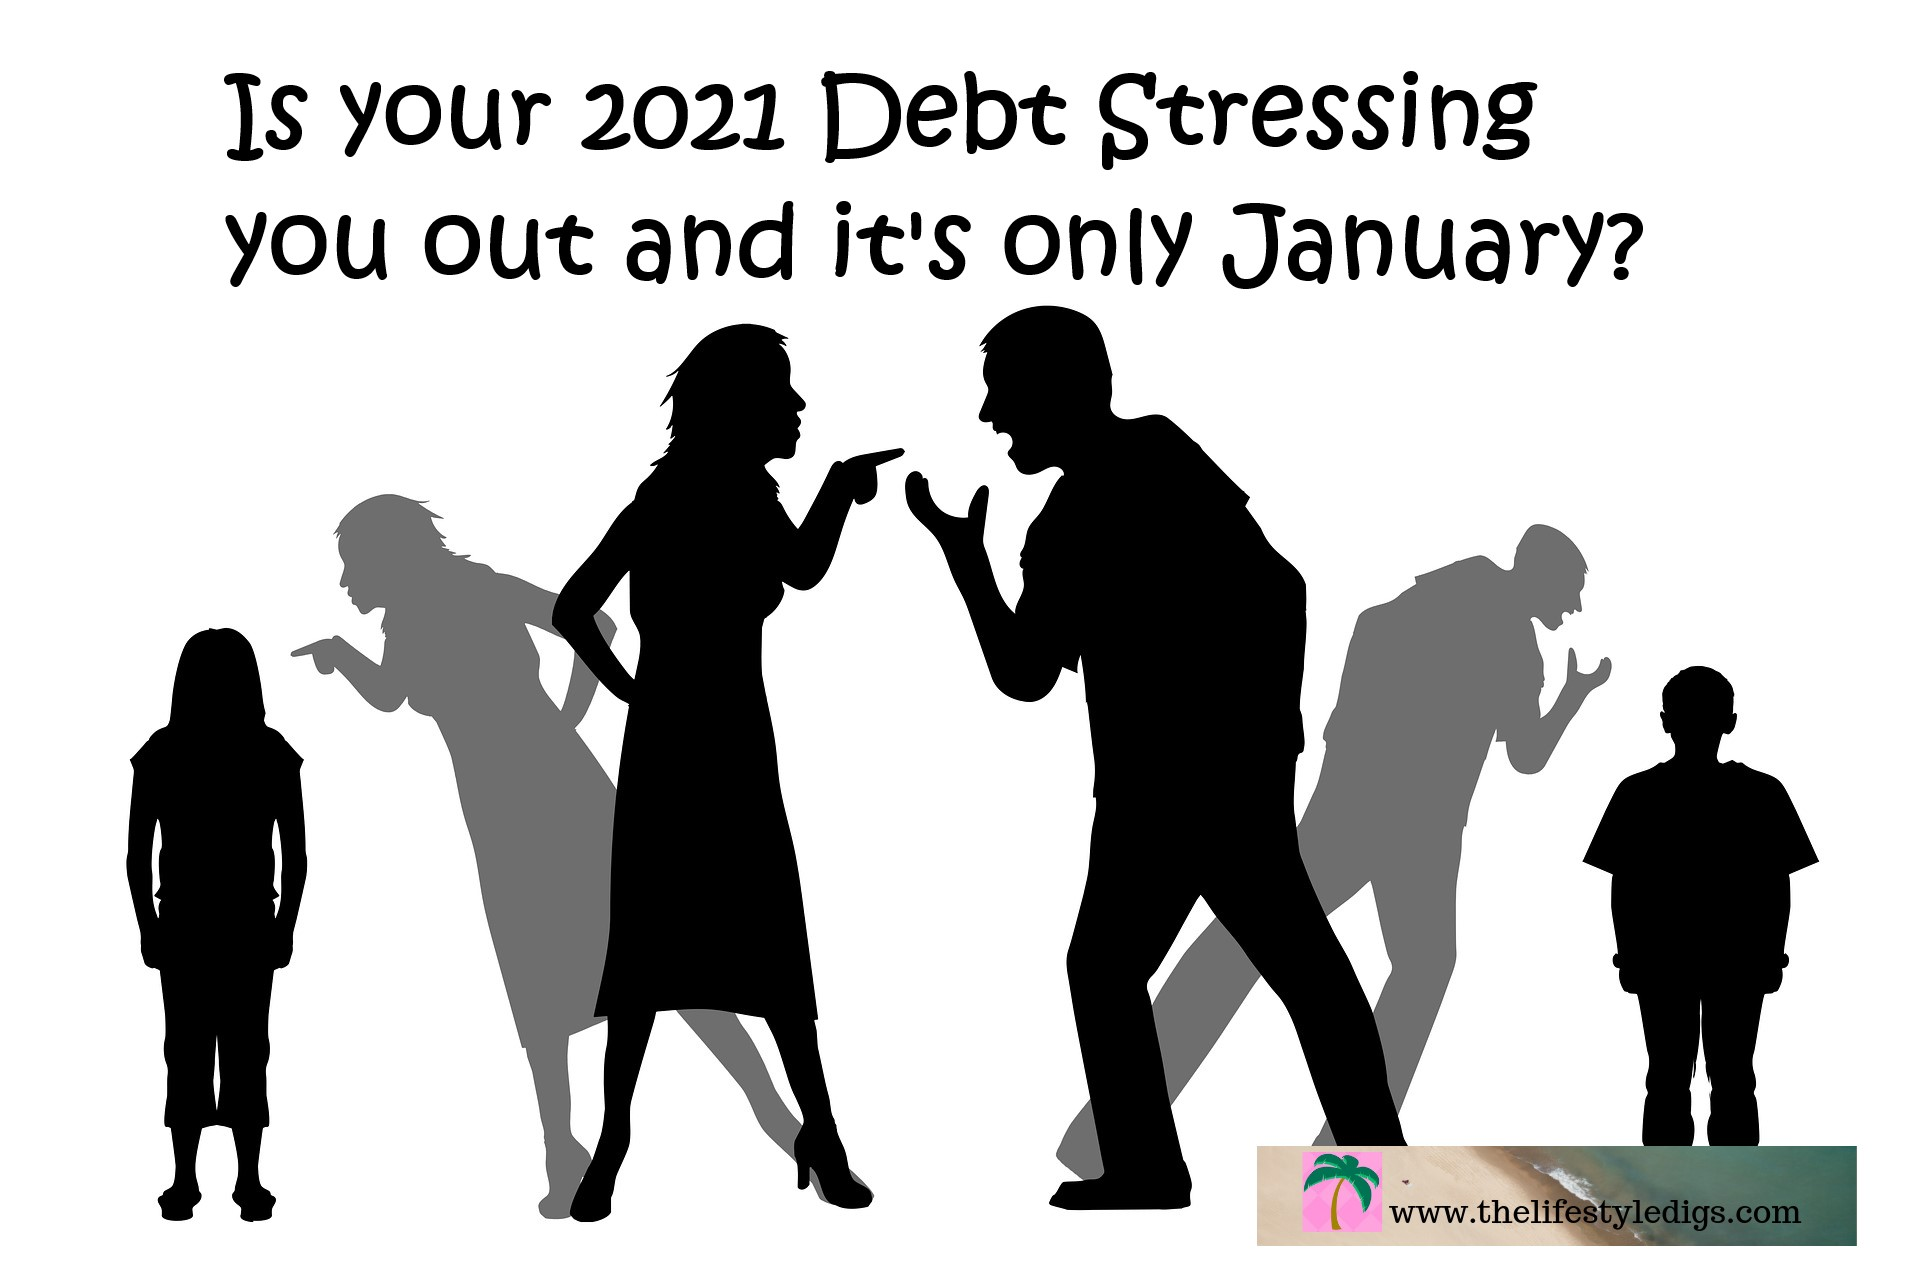 Is your 2021 Debt Stressing you out and it's only January?